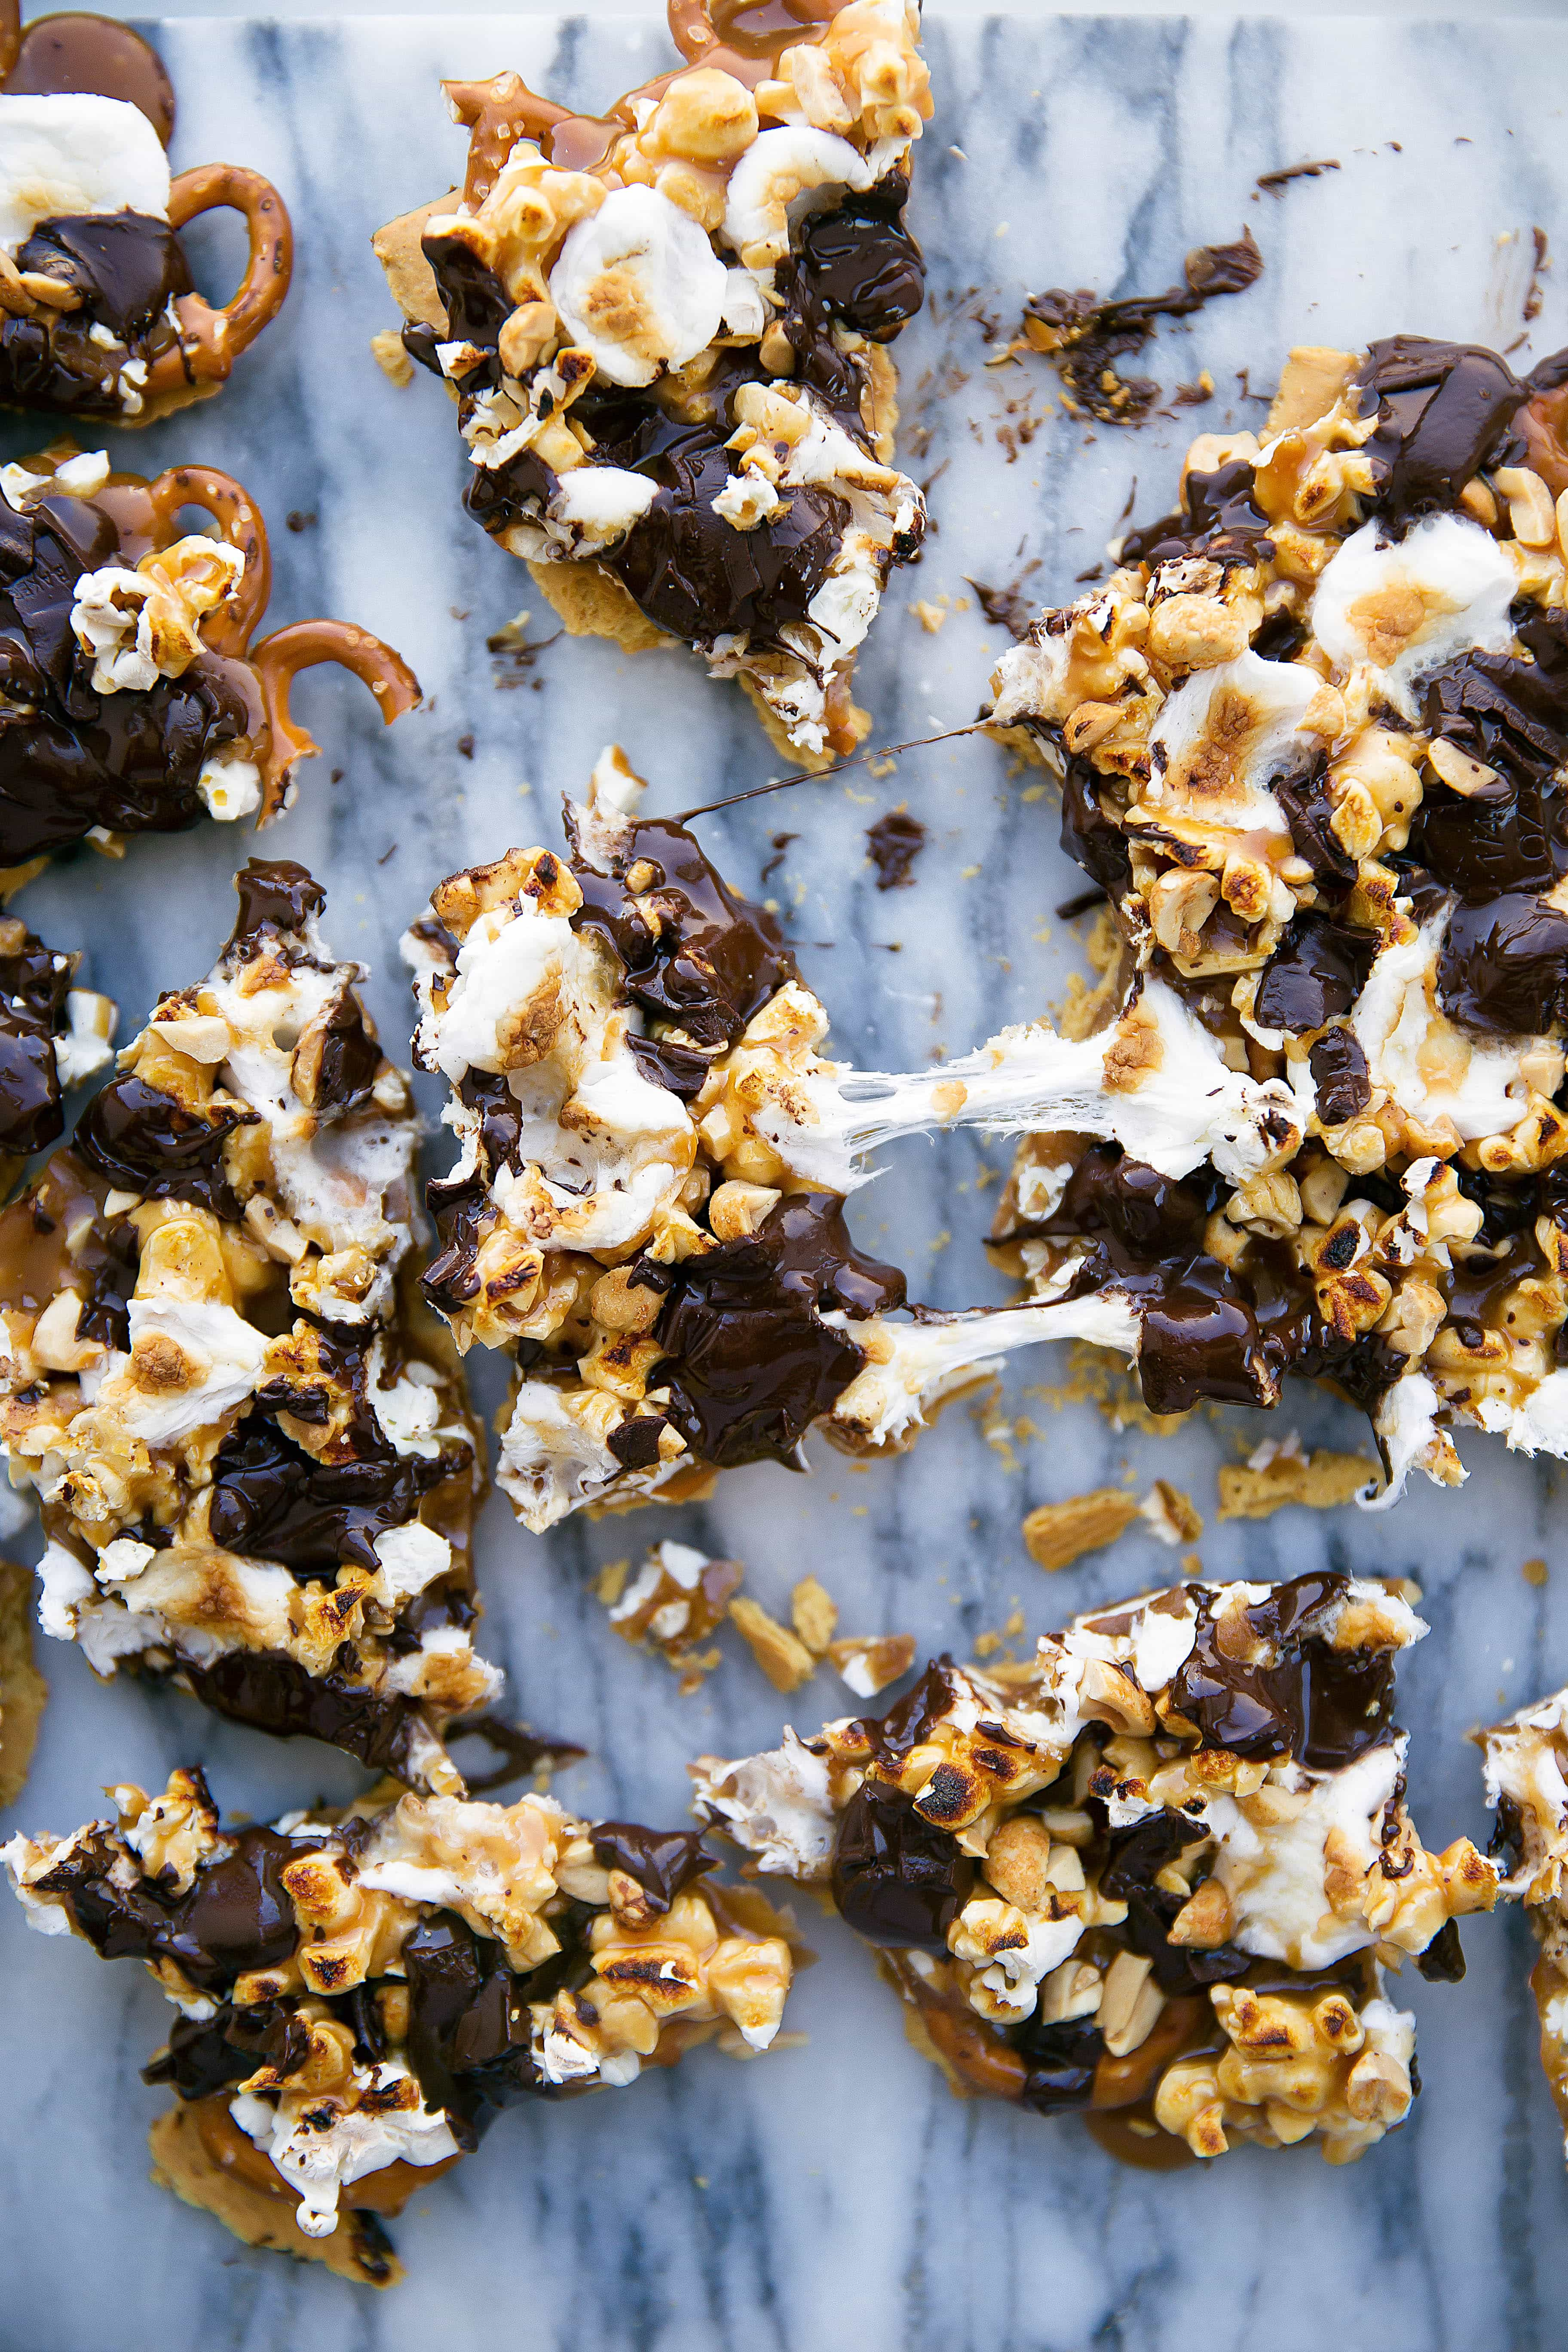 This loaded bark is made with graham crackers, pretzels, peanuts, toffee, popcorn, chocolate, and toasted marshmallows. Betcha can't eat just one!